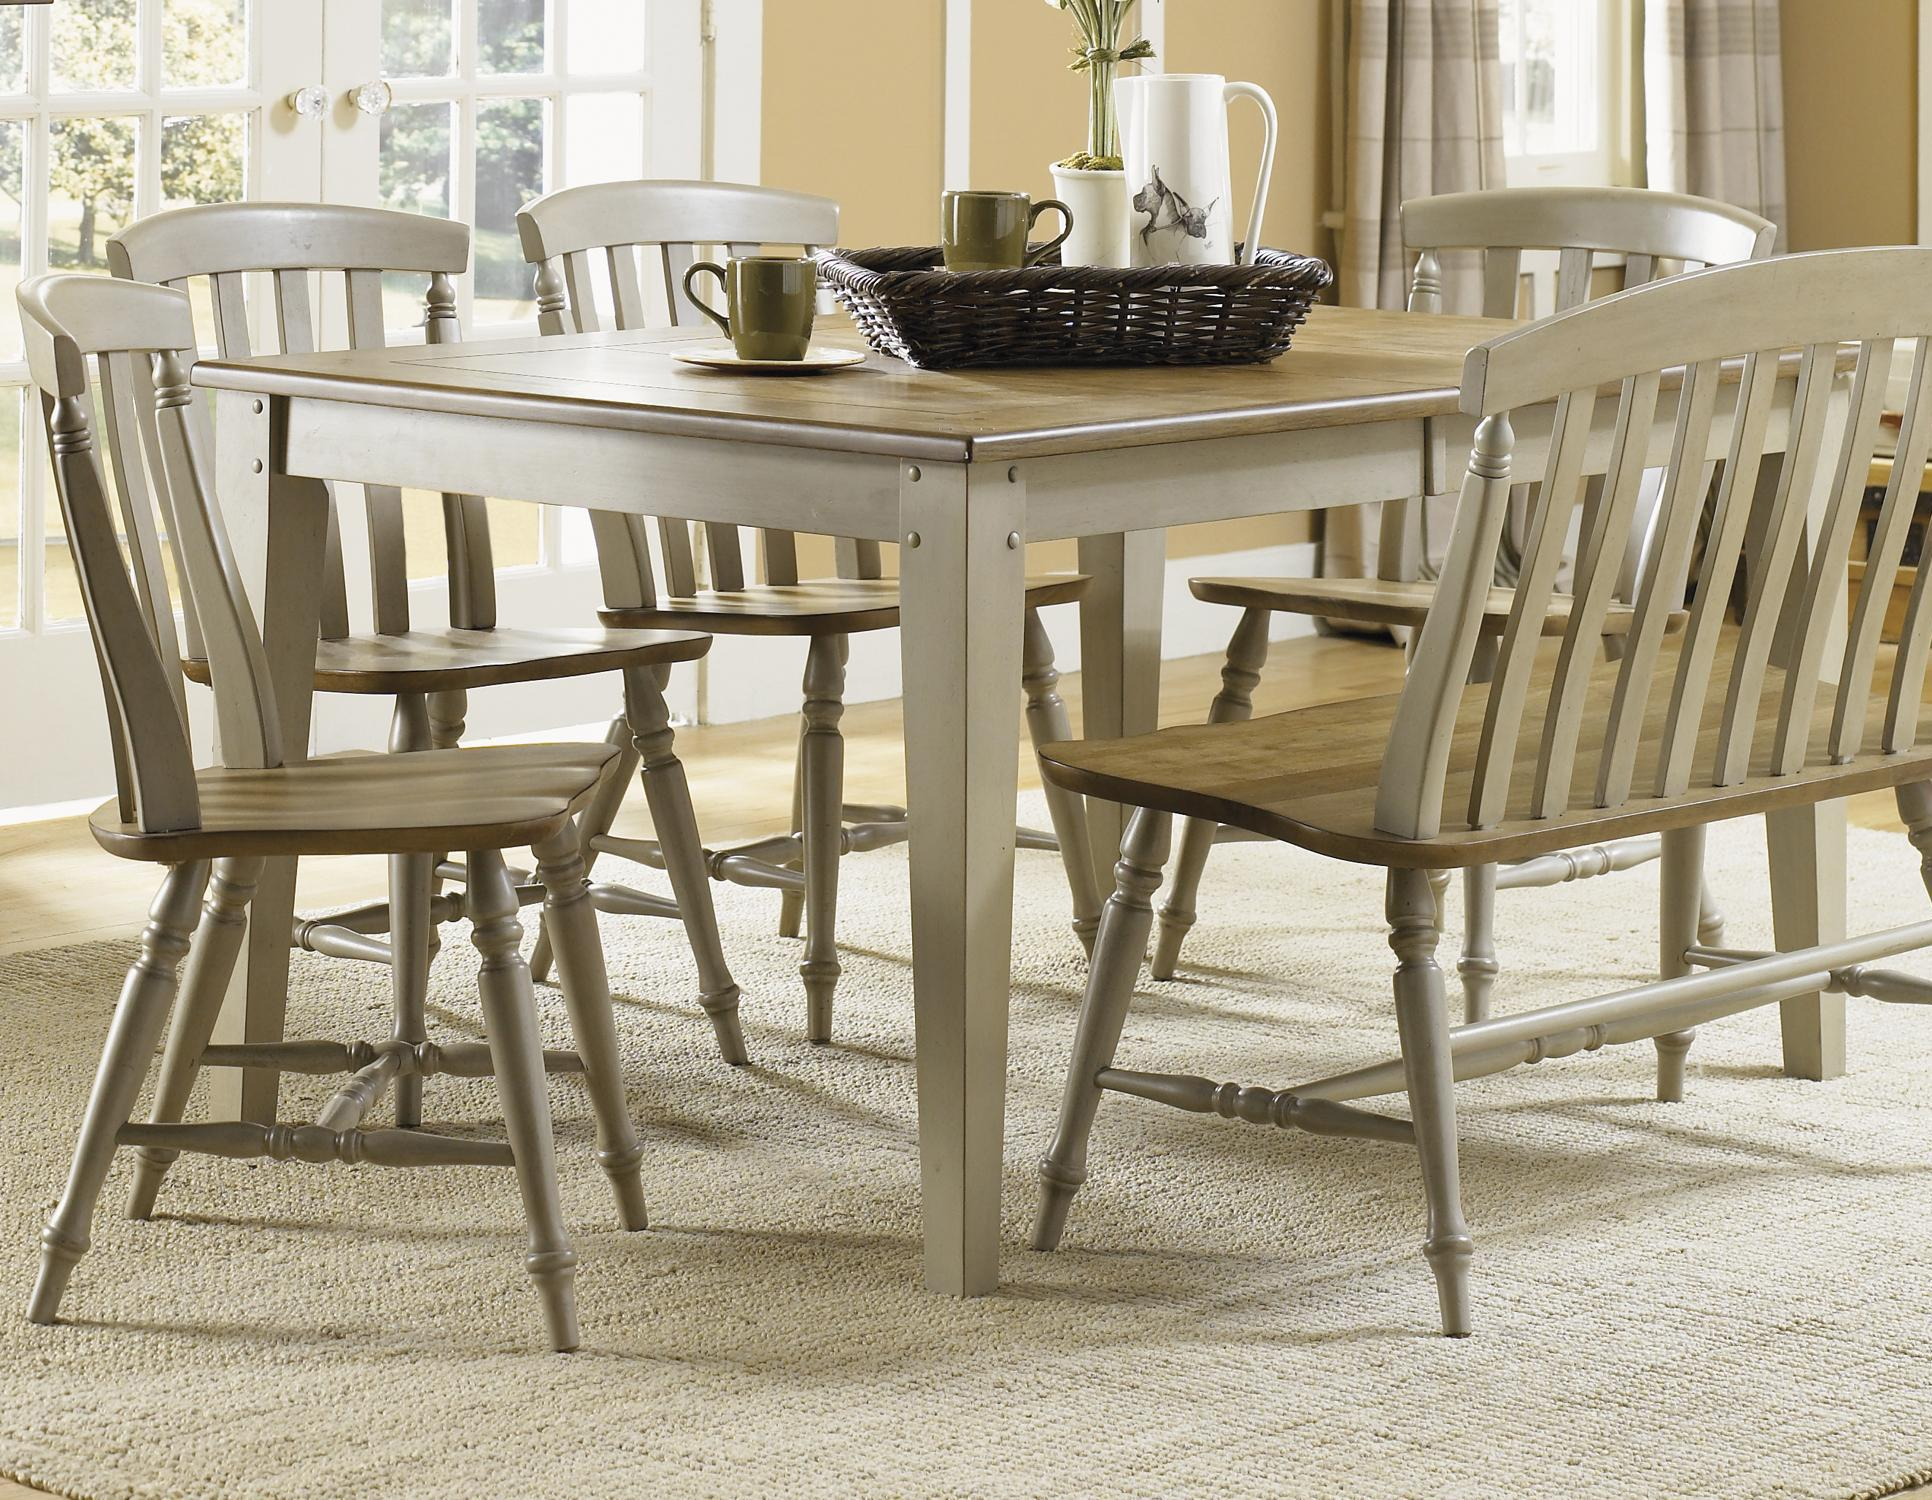 Al Fresco 5 Piece Dining Table Set by Liberty Furniture at Pilgrim Furniture City